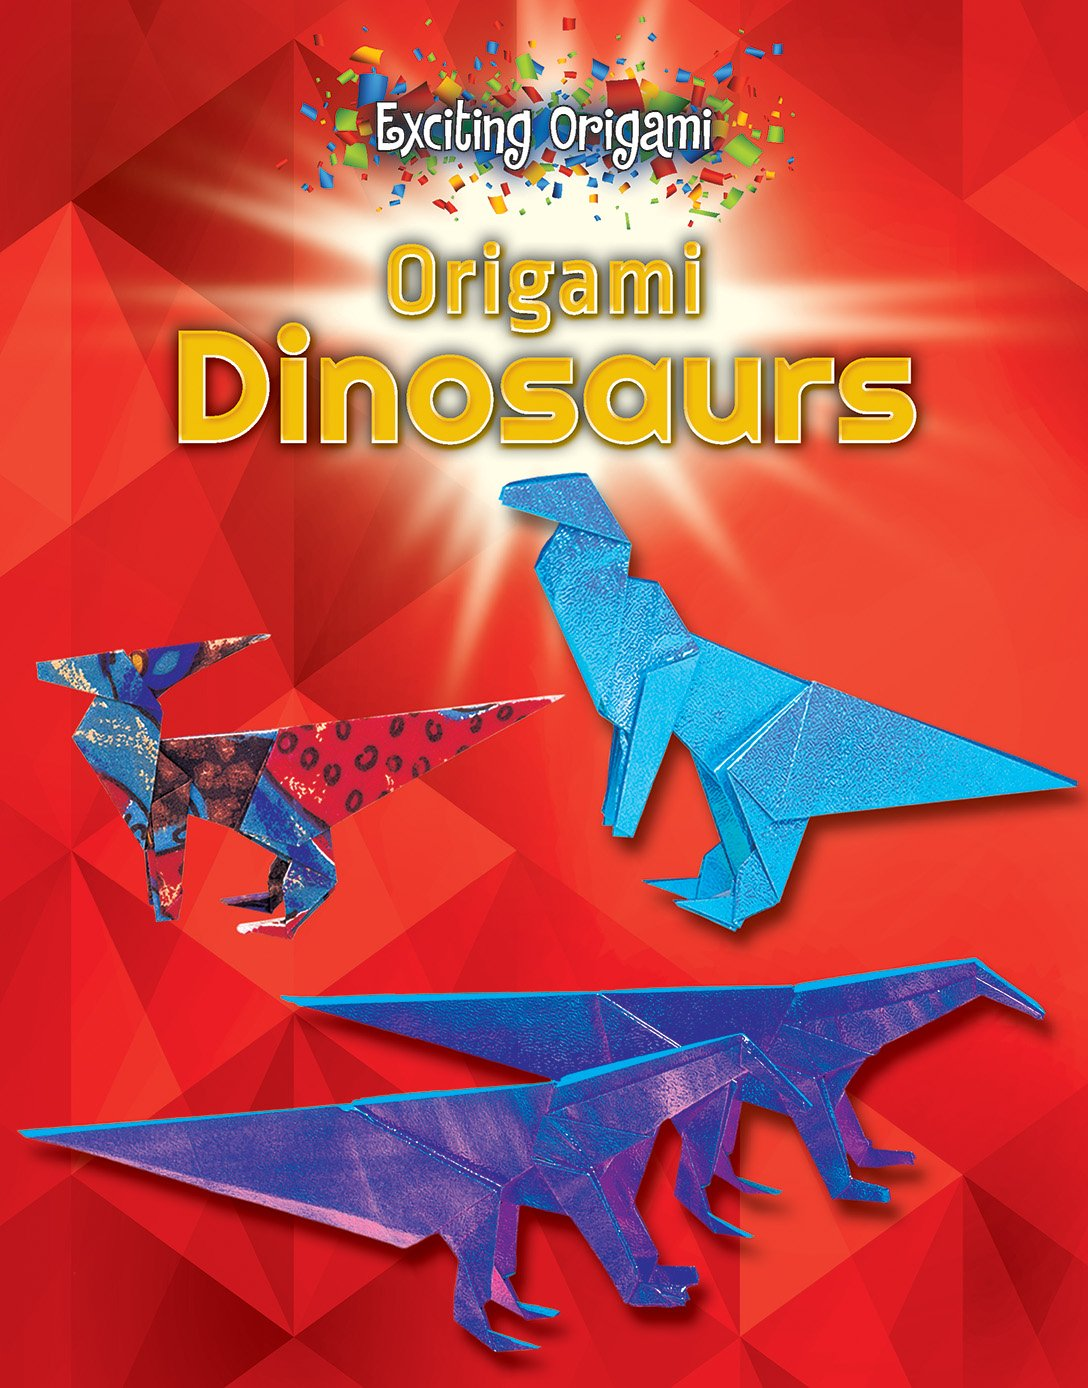 Origami Dinosaurs Exciting Walter Alexandr Schultz Dinosaur Diagrams 9780766086500 Books